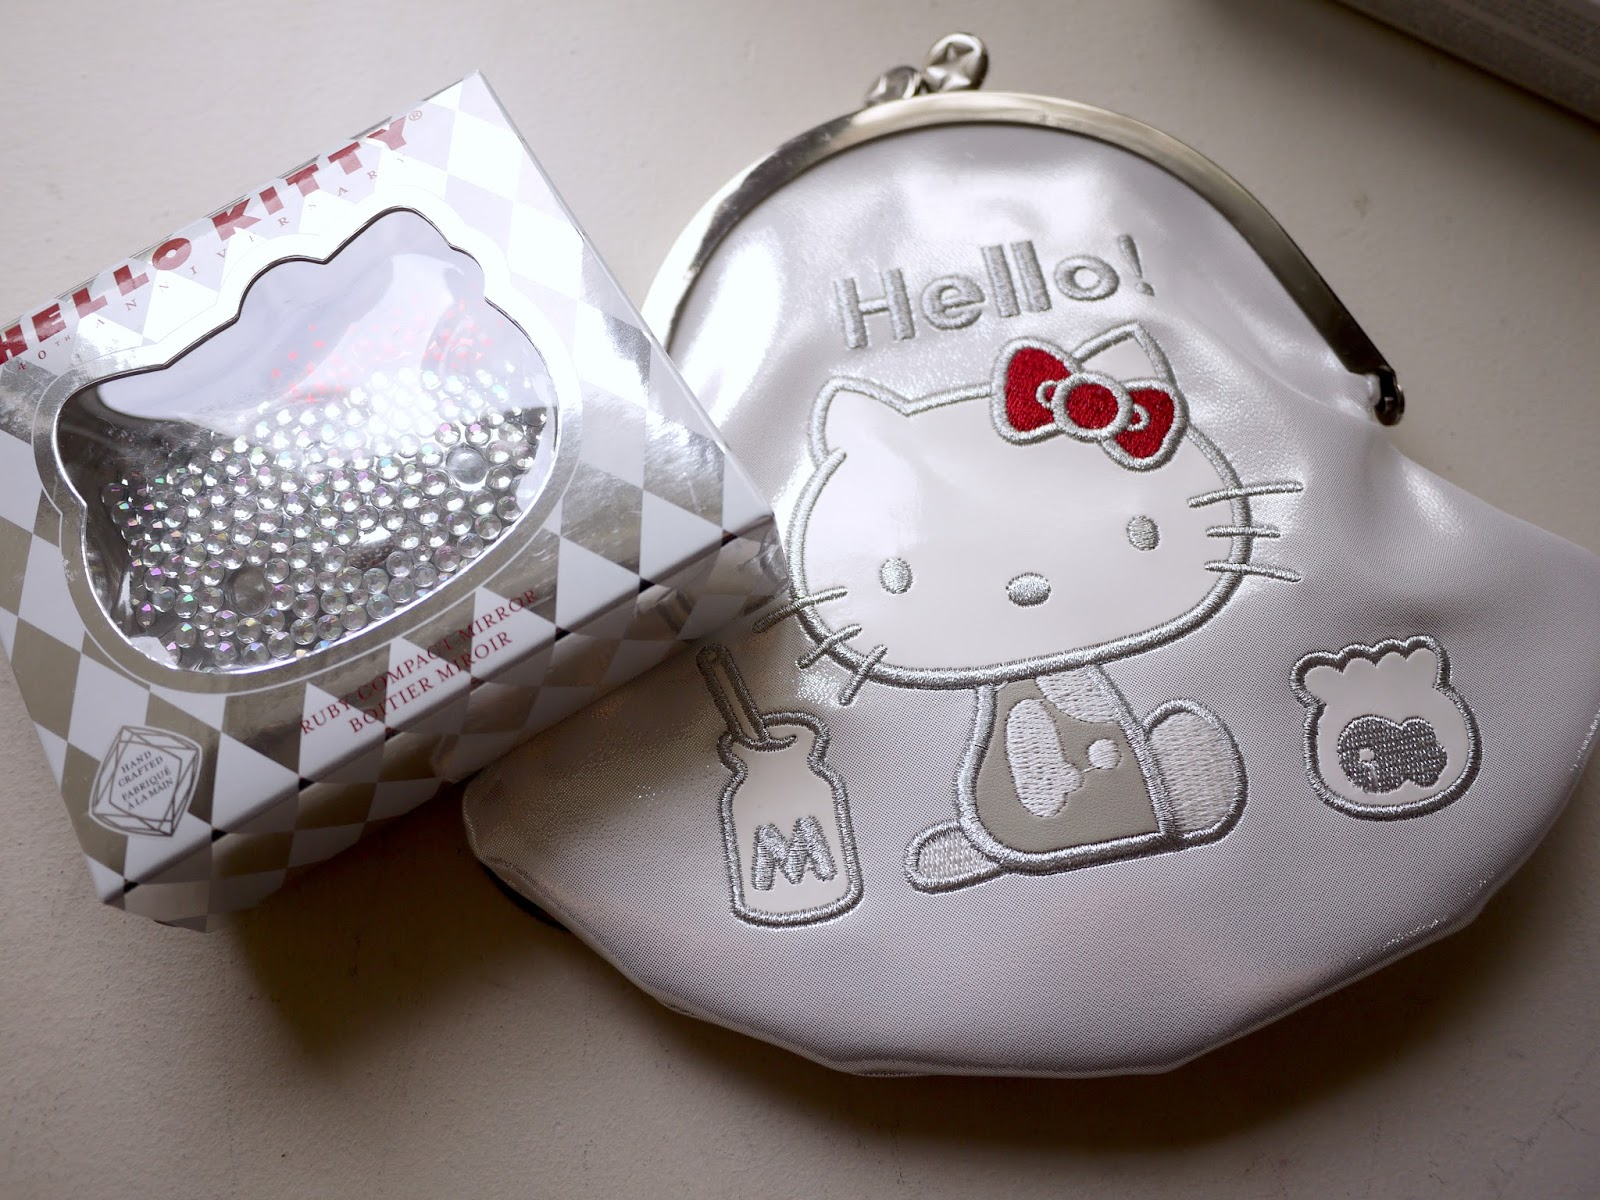 Sephora Hello Kitty Milk Money Makeup Bag and Ruby Compact MIrror review